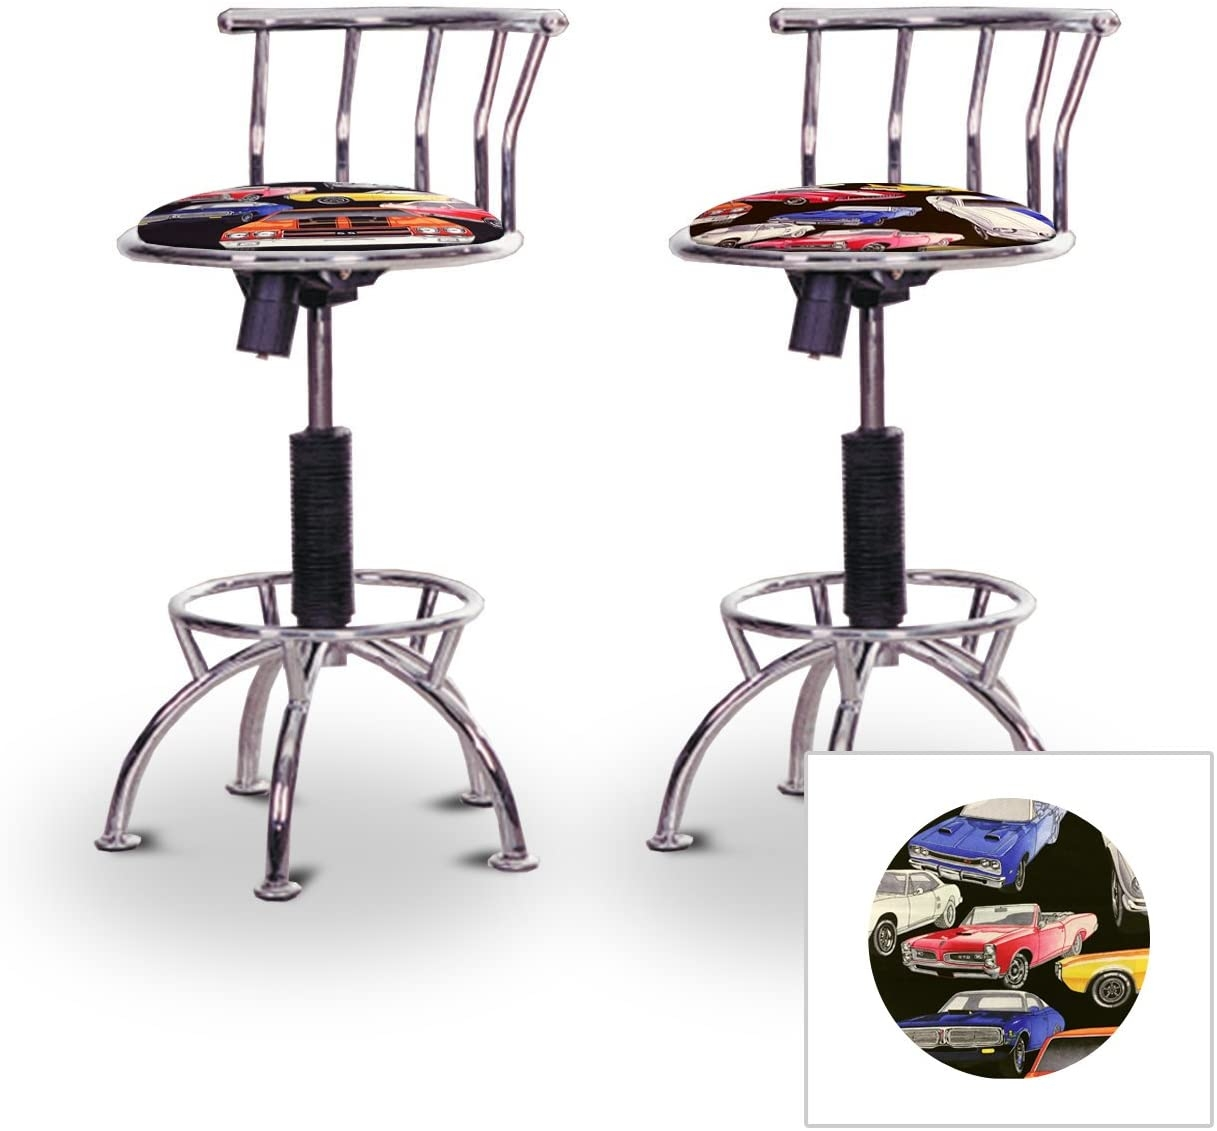 2 24u0027u0027 To 29u0027u0027 Adjustable Chrome Bar Stools (Chrome) (